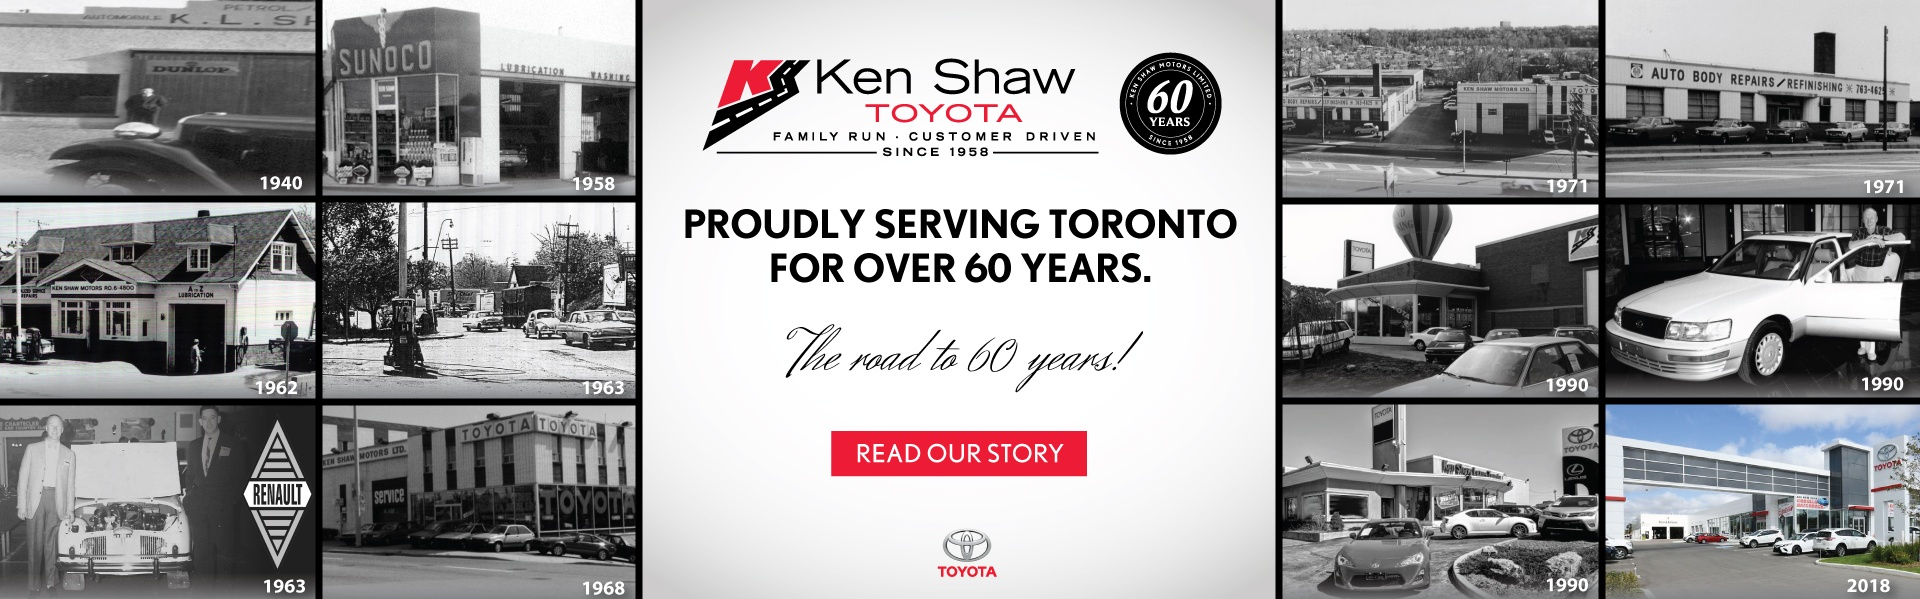 Ken shaw toyota dealership in toronto ontario